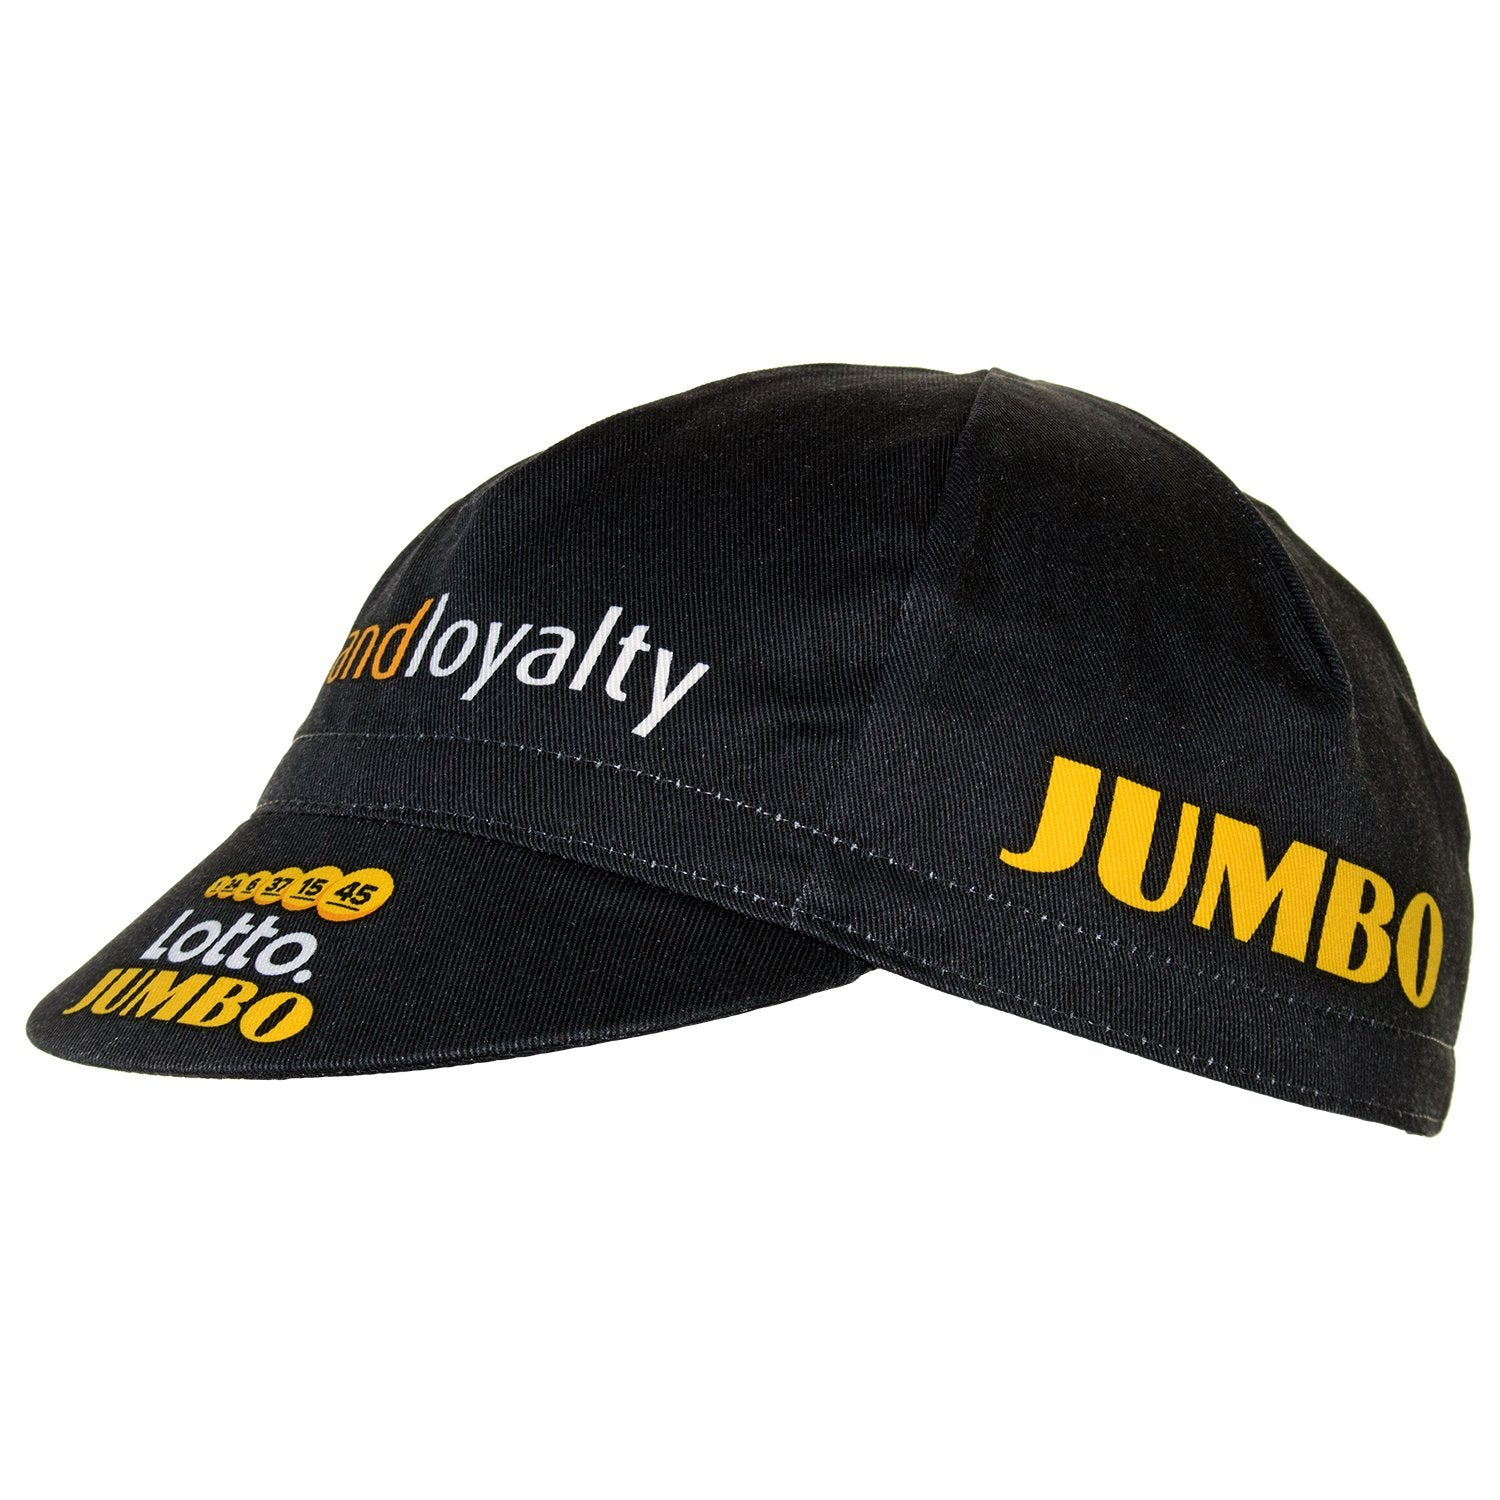 Team Lotto NL Jumbo Cotton Cycling Cap